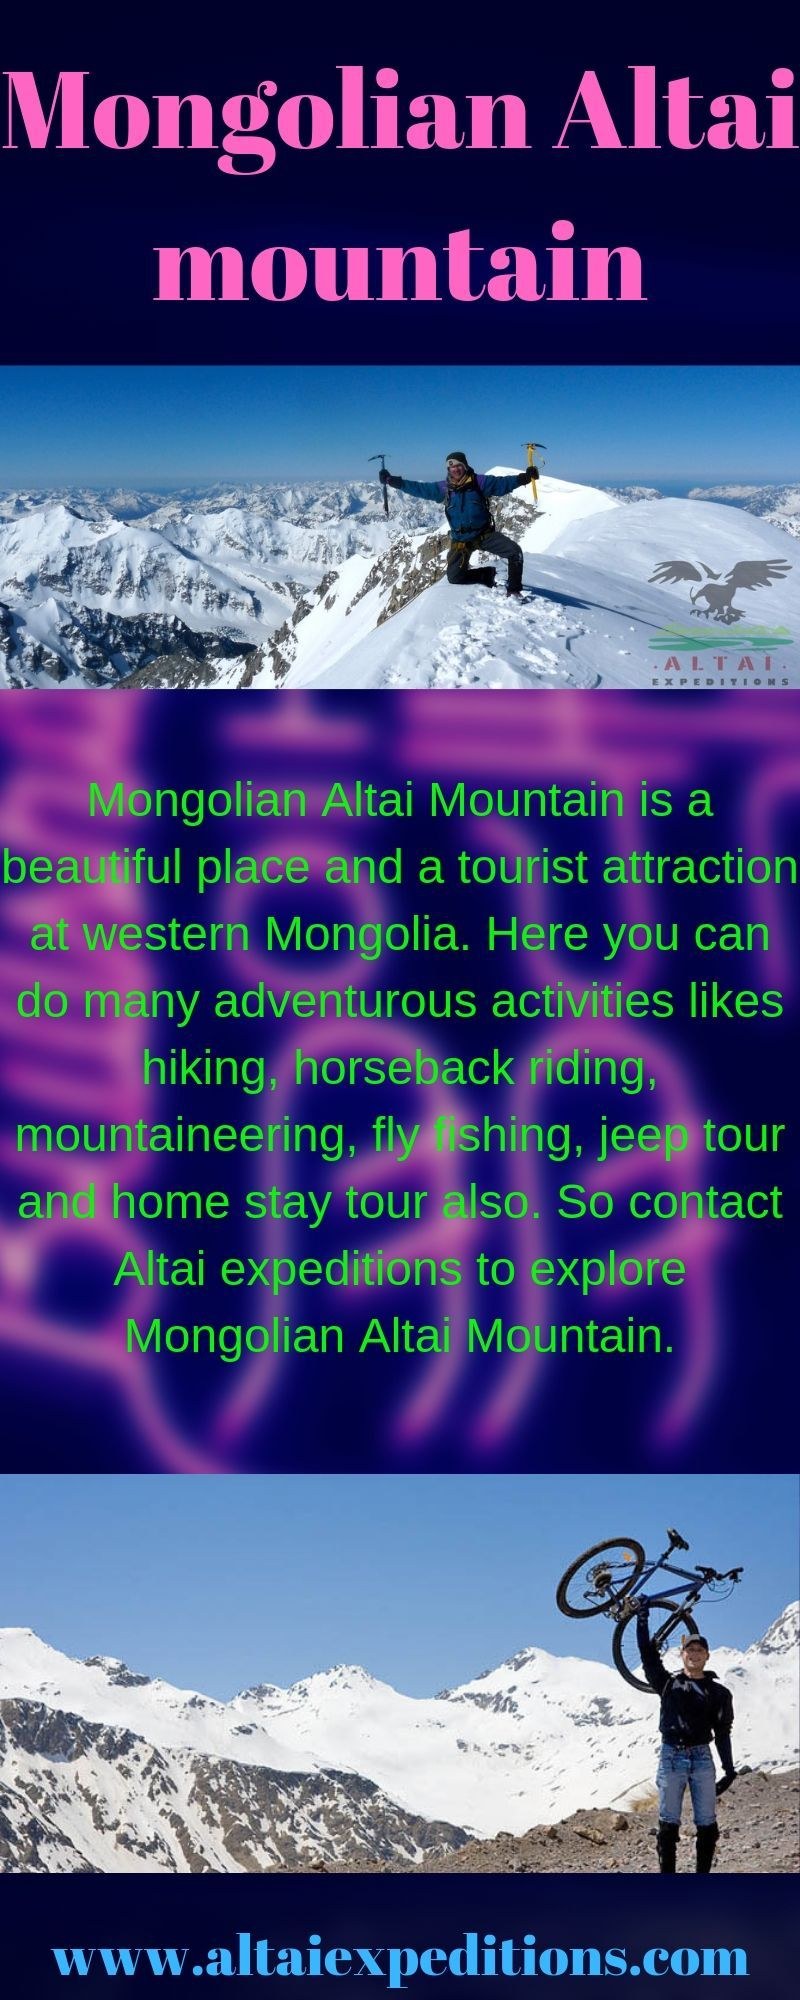 Mongolian Altai Mountain is a beautiful place and a